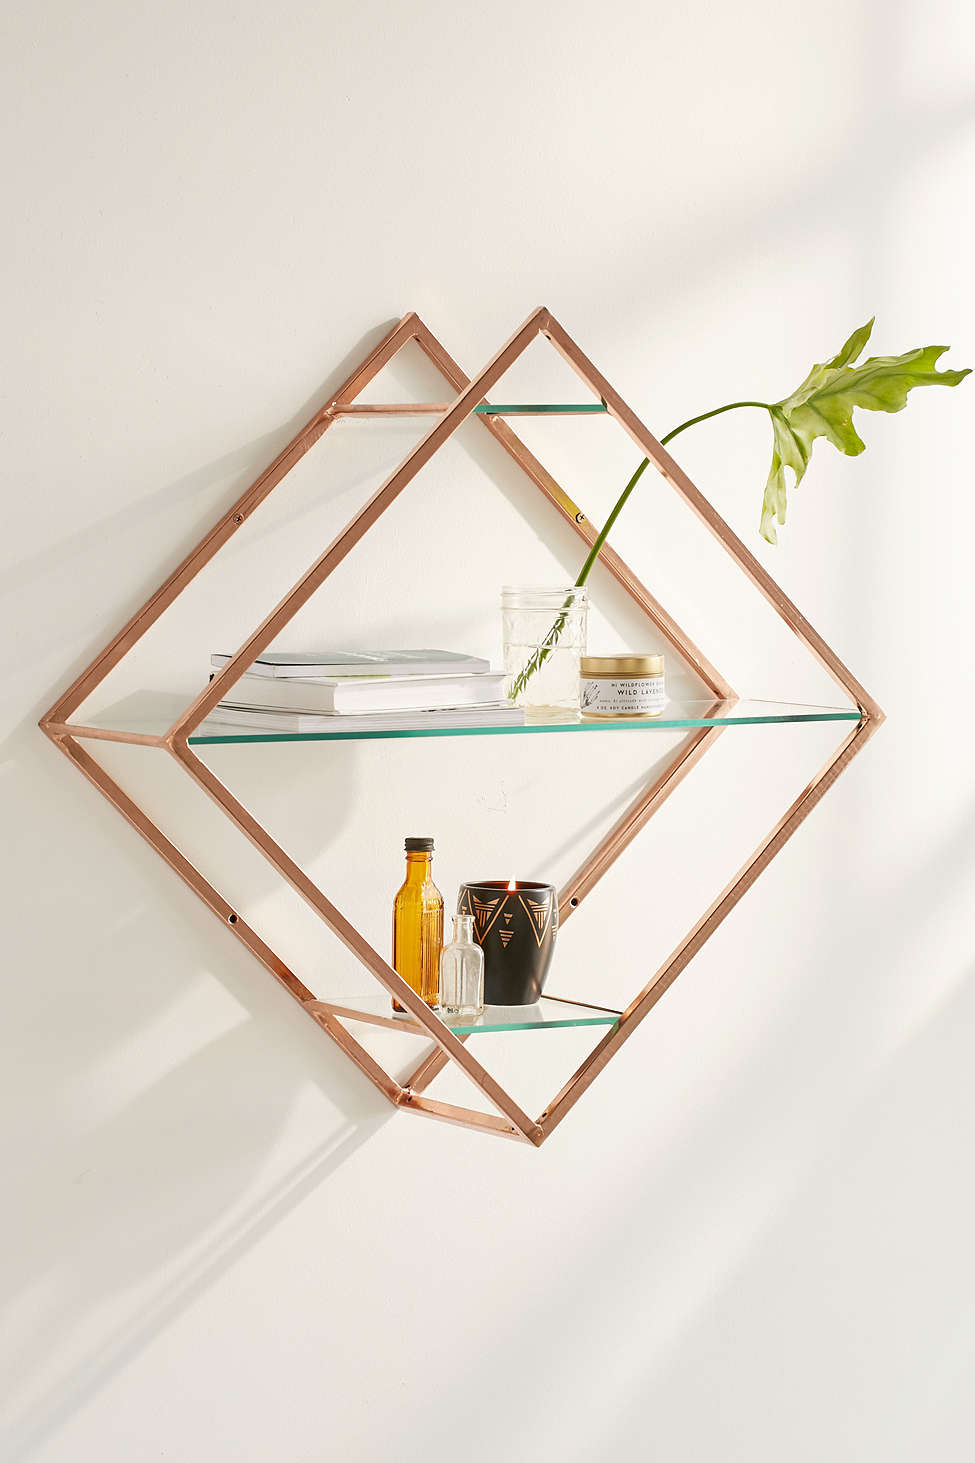 Geo wall shelf from Urban Outfitters